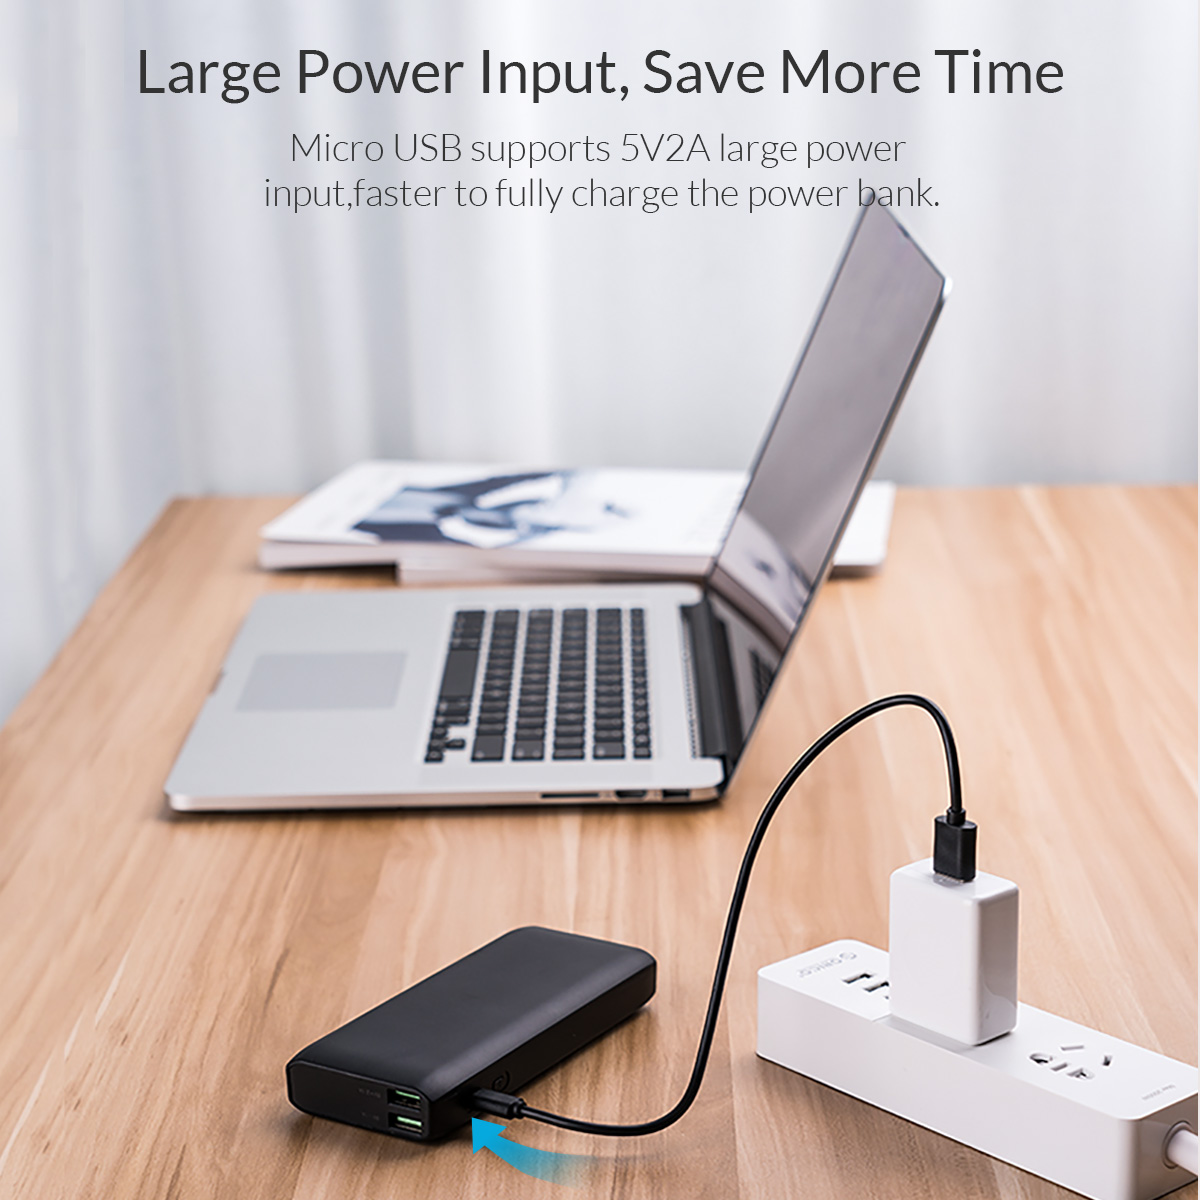 large power input save more time